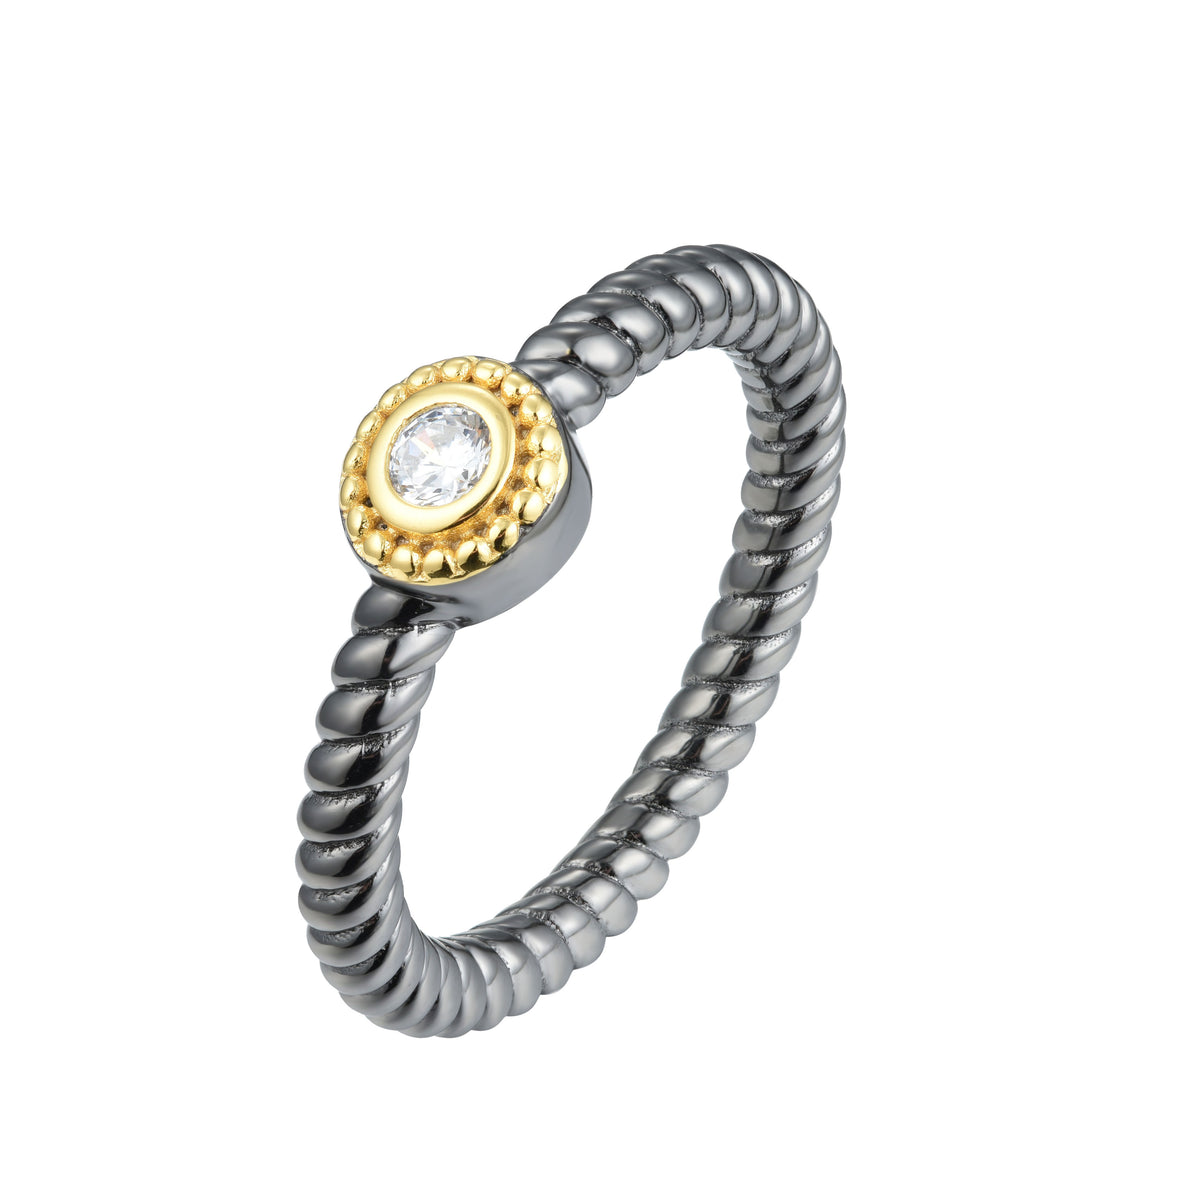 Salacia | Chios Ring | 925 Silver | White CZ | 18K Gold & Black Rhodium Plated